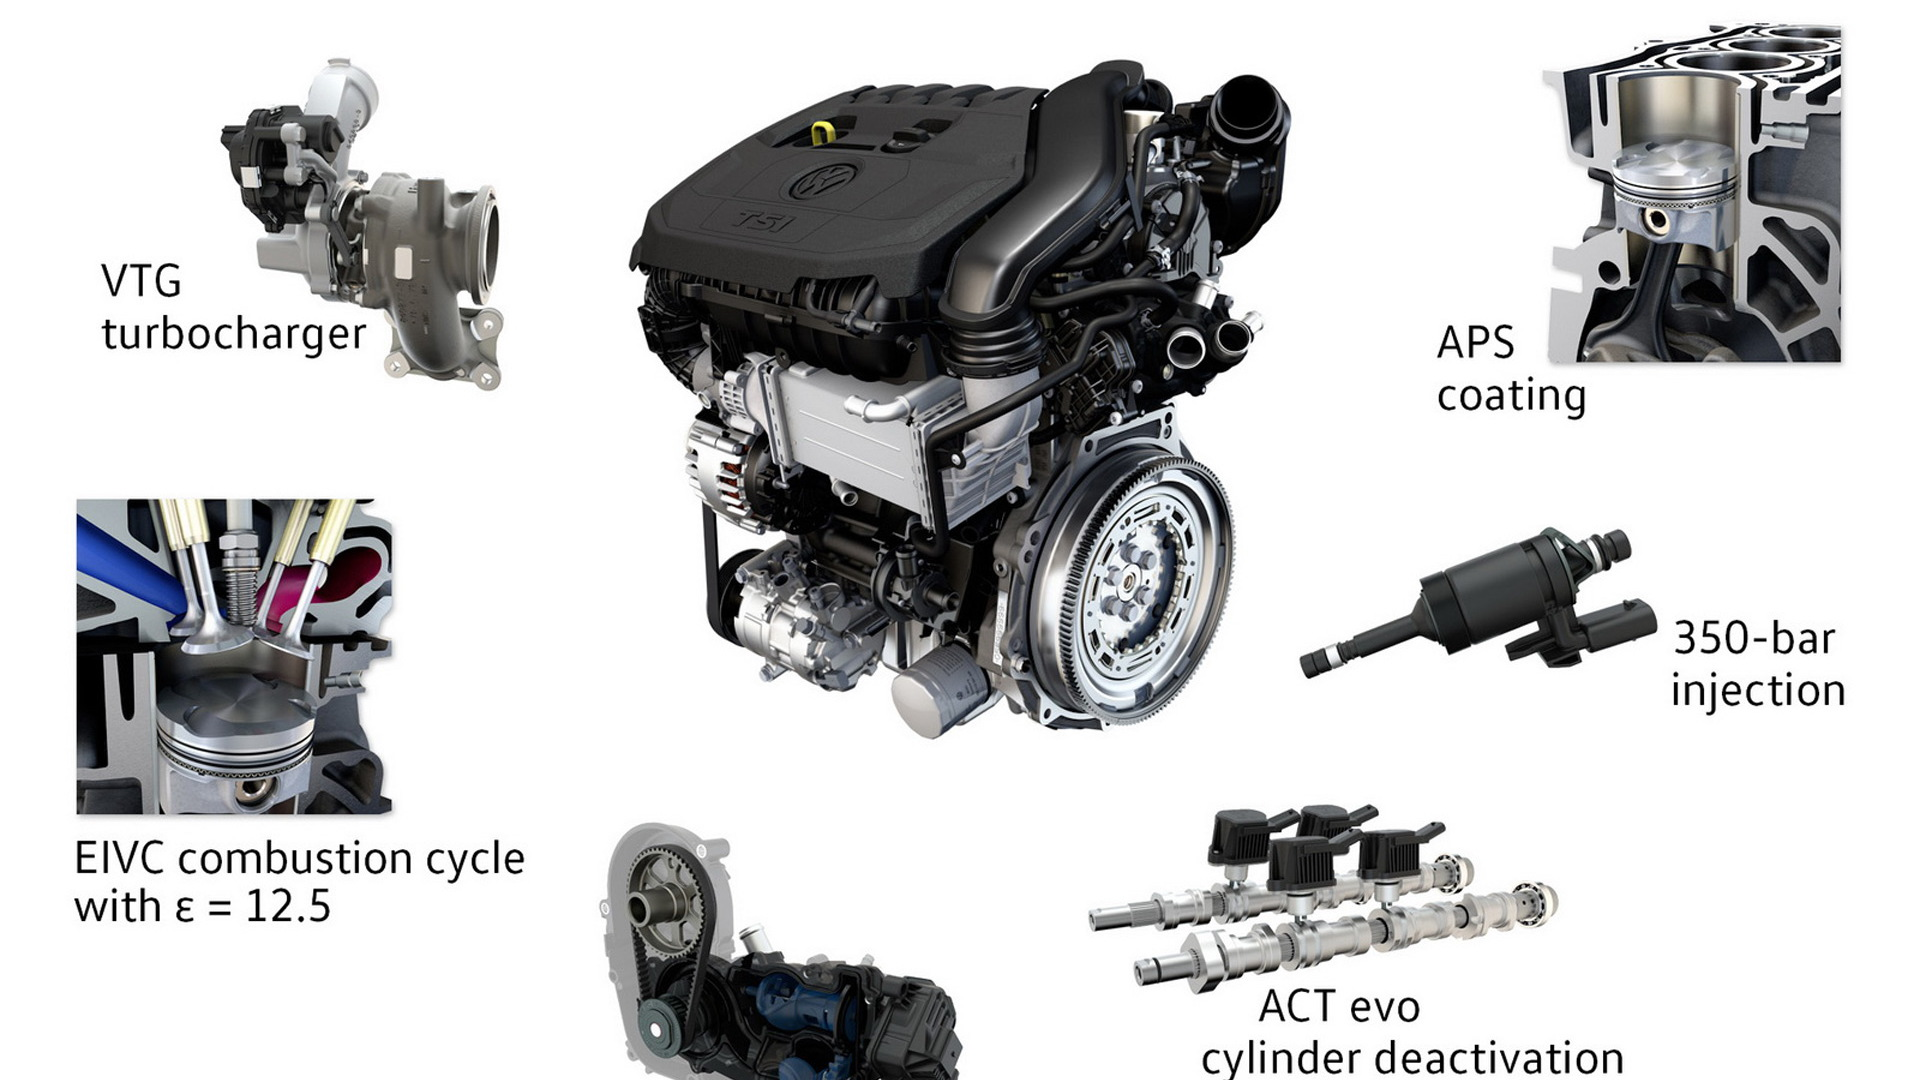 Volkswagen 1.5-liter 4-cylinder engine with variable turbine geometry